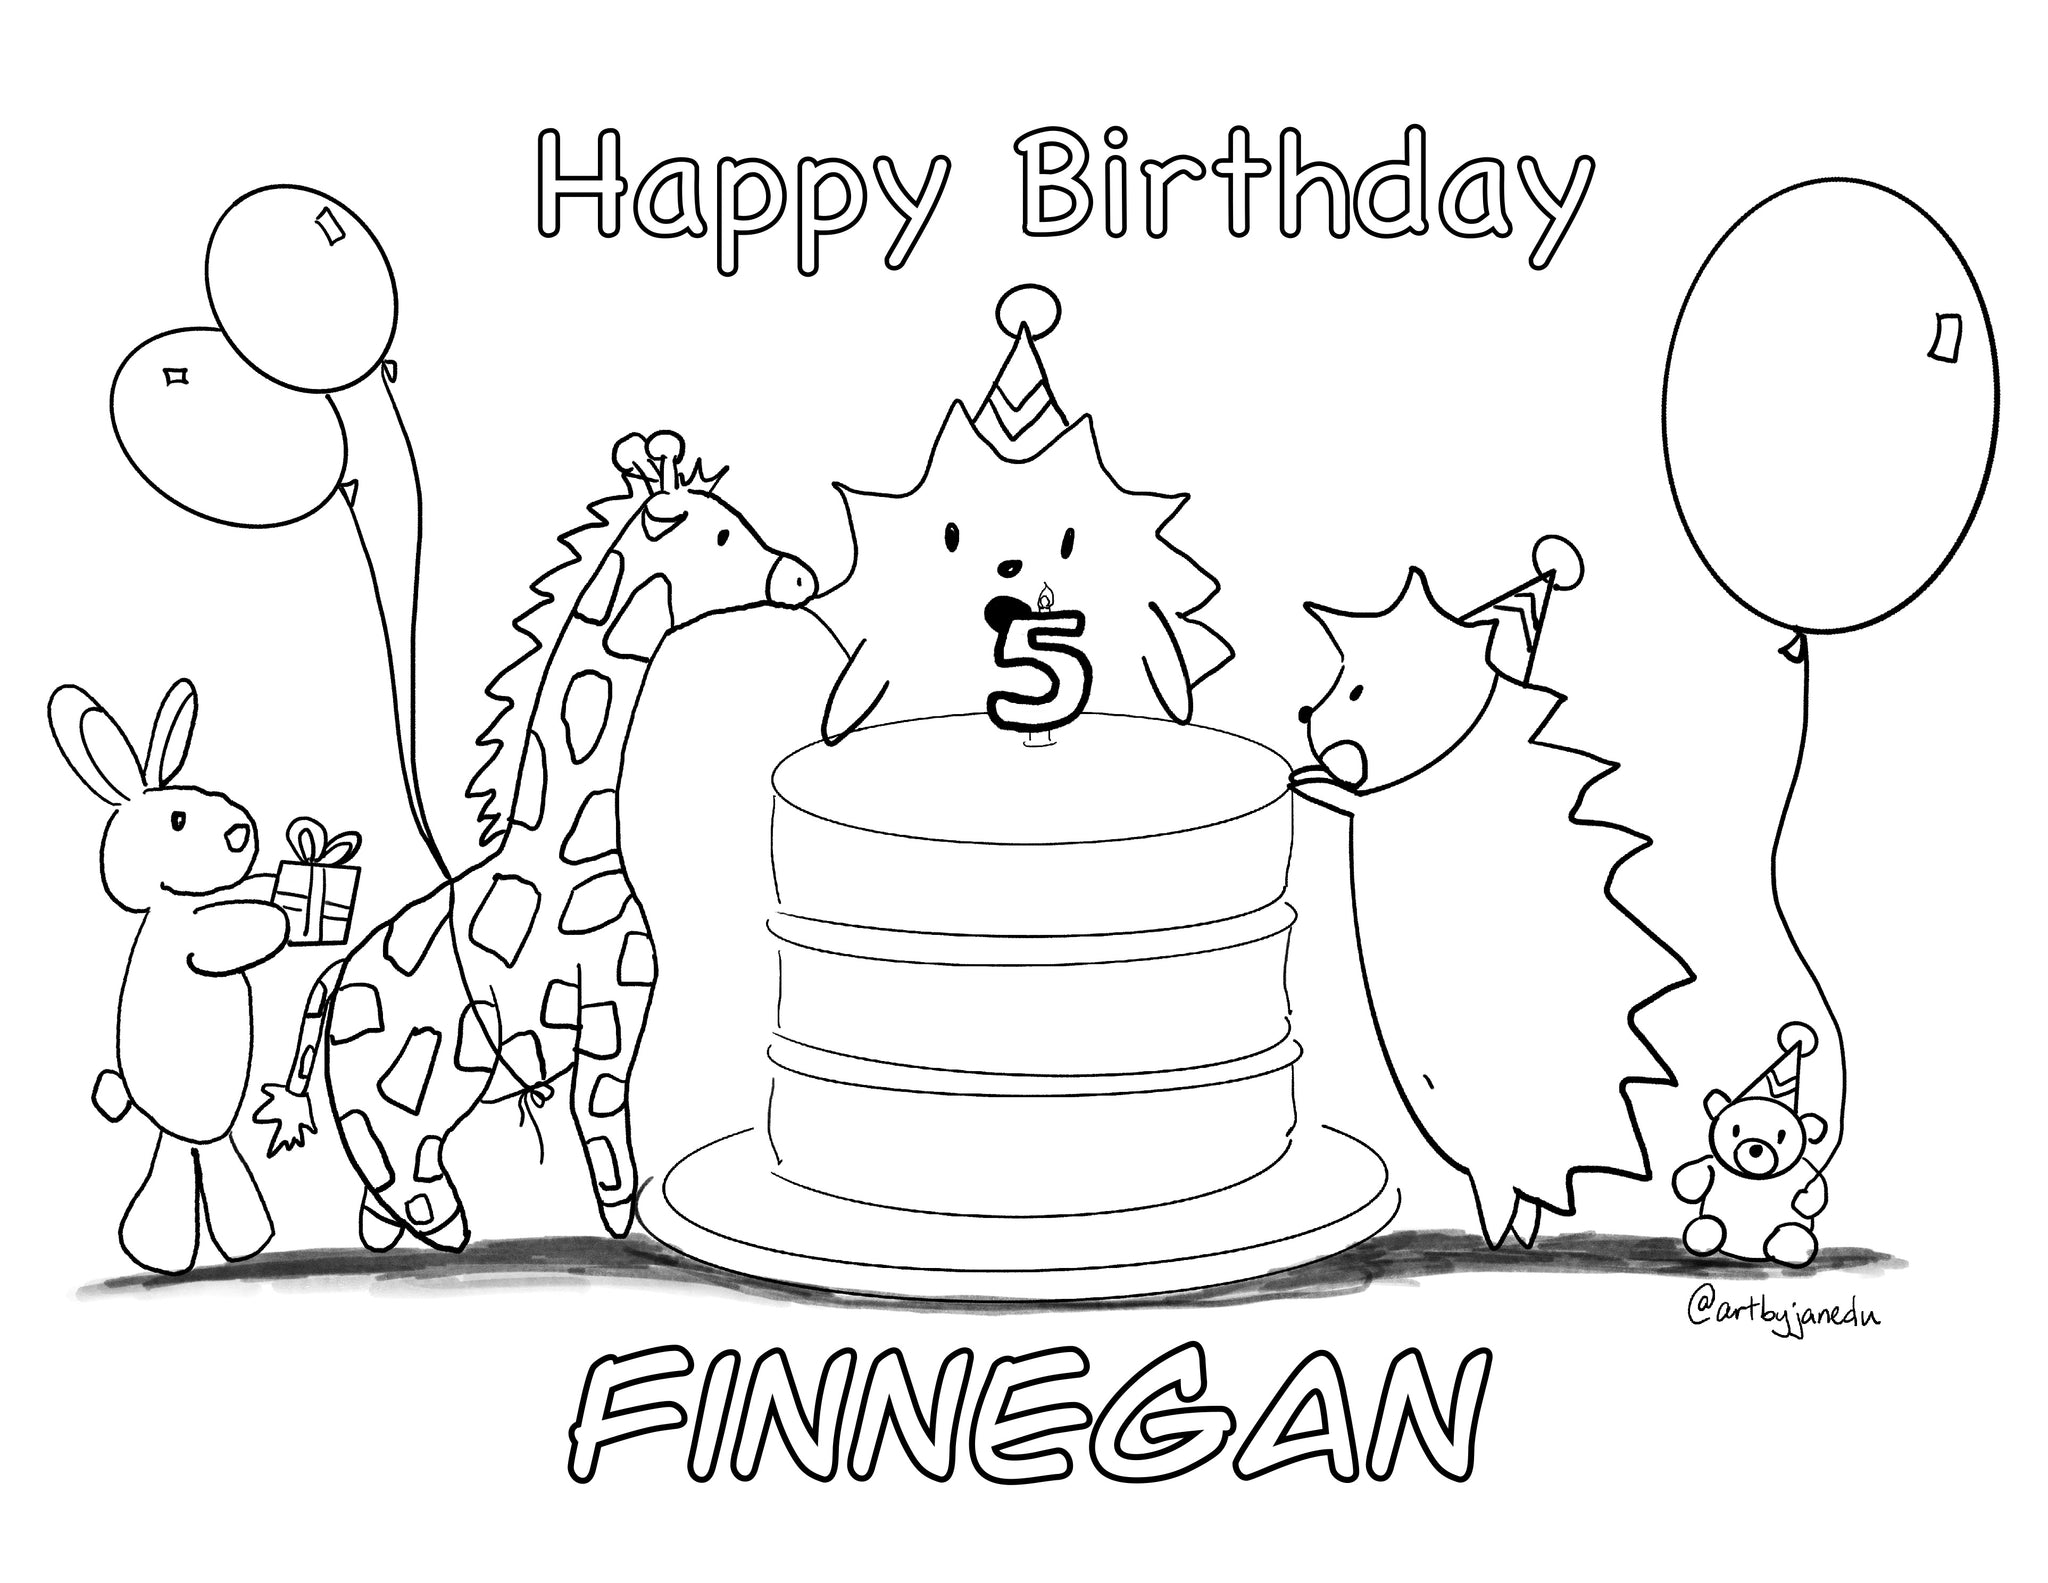 Finn's 5th Birthday Card